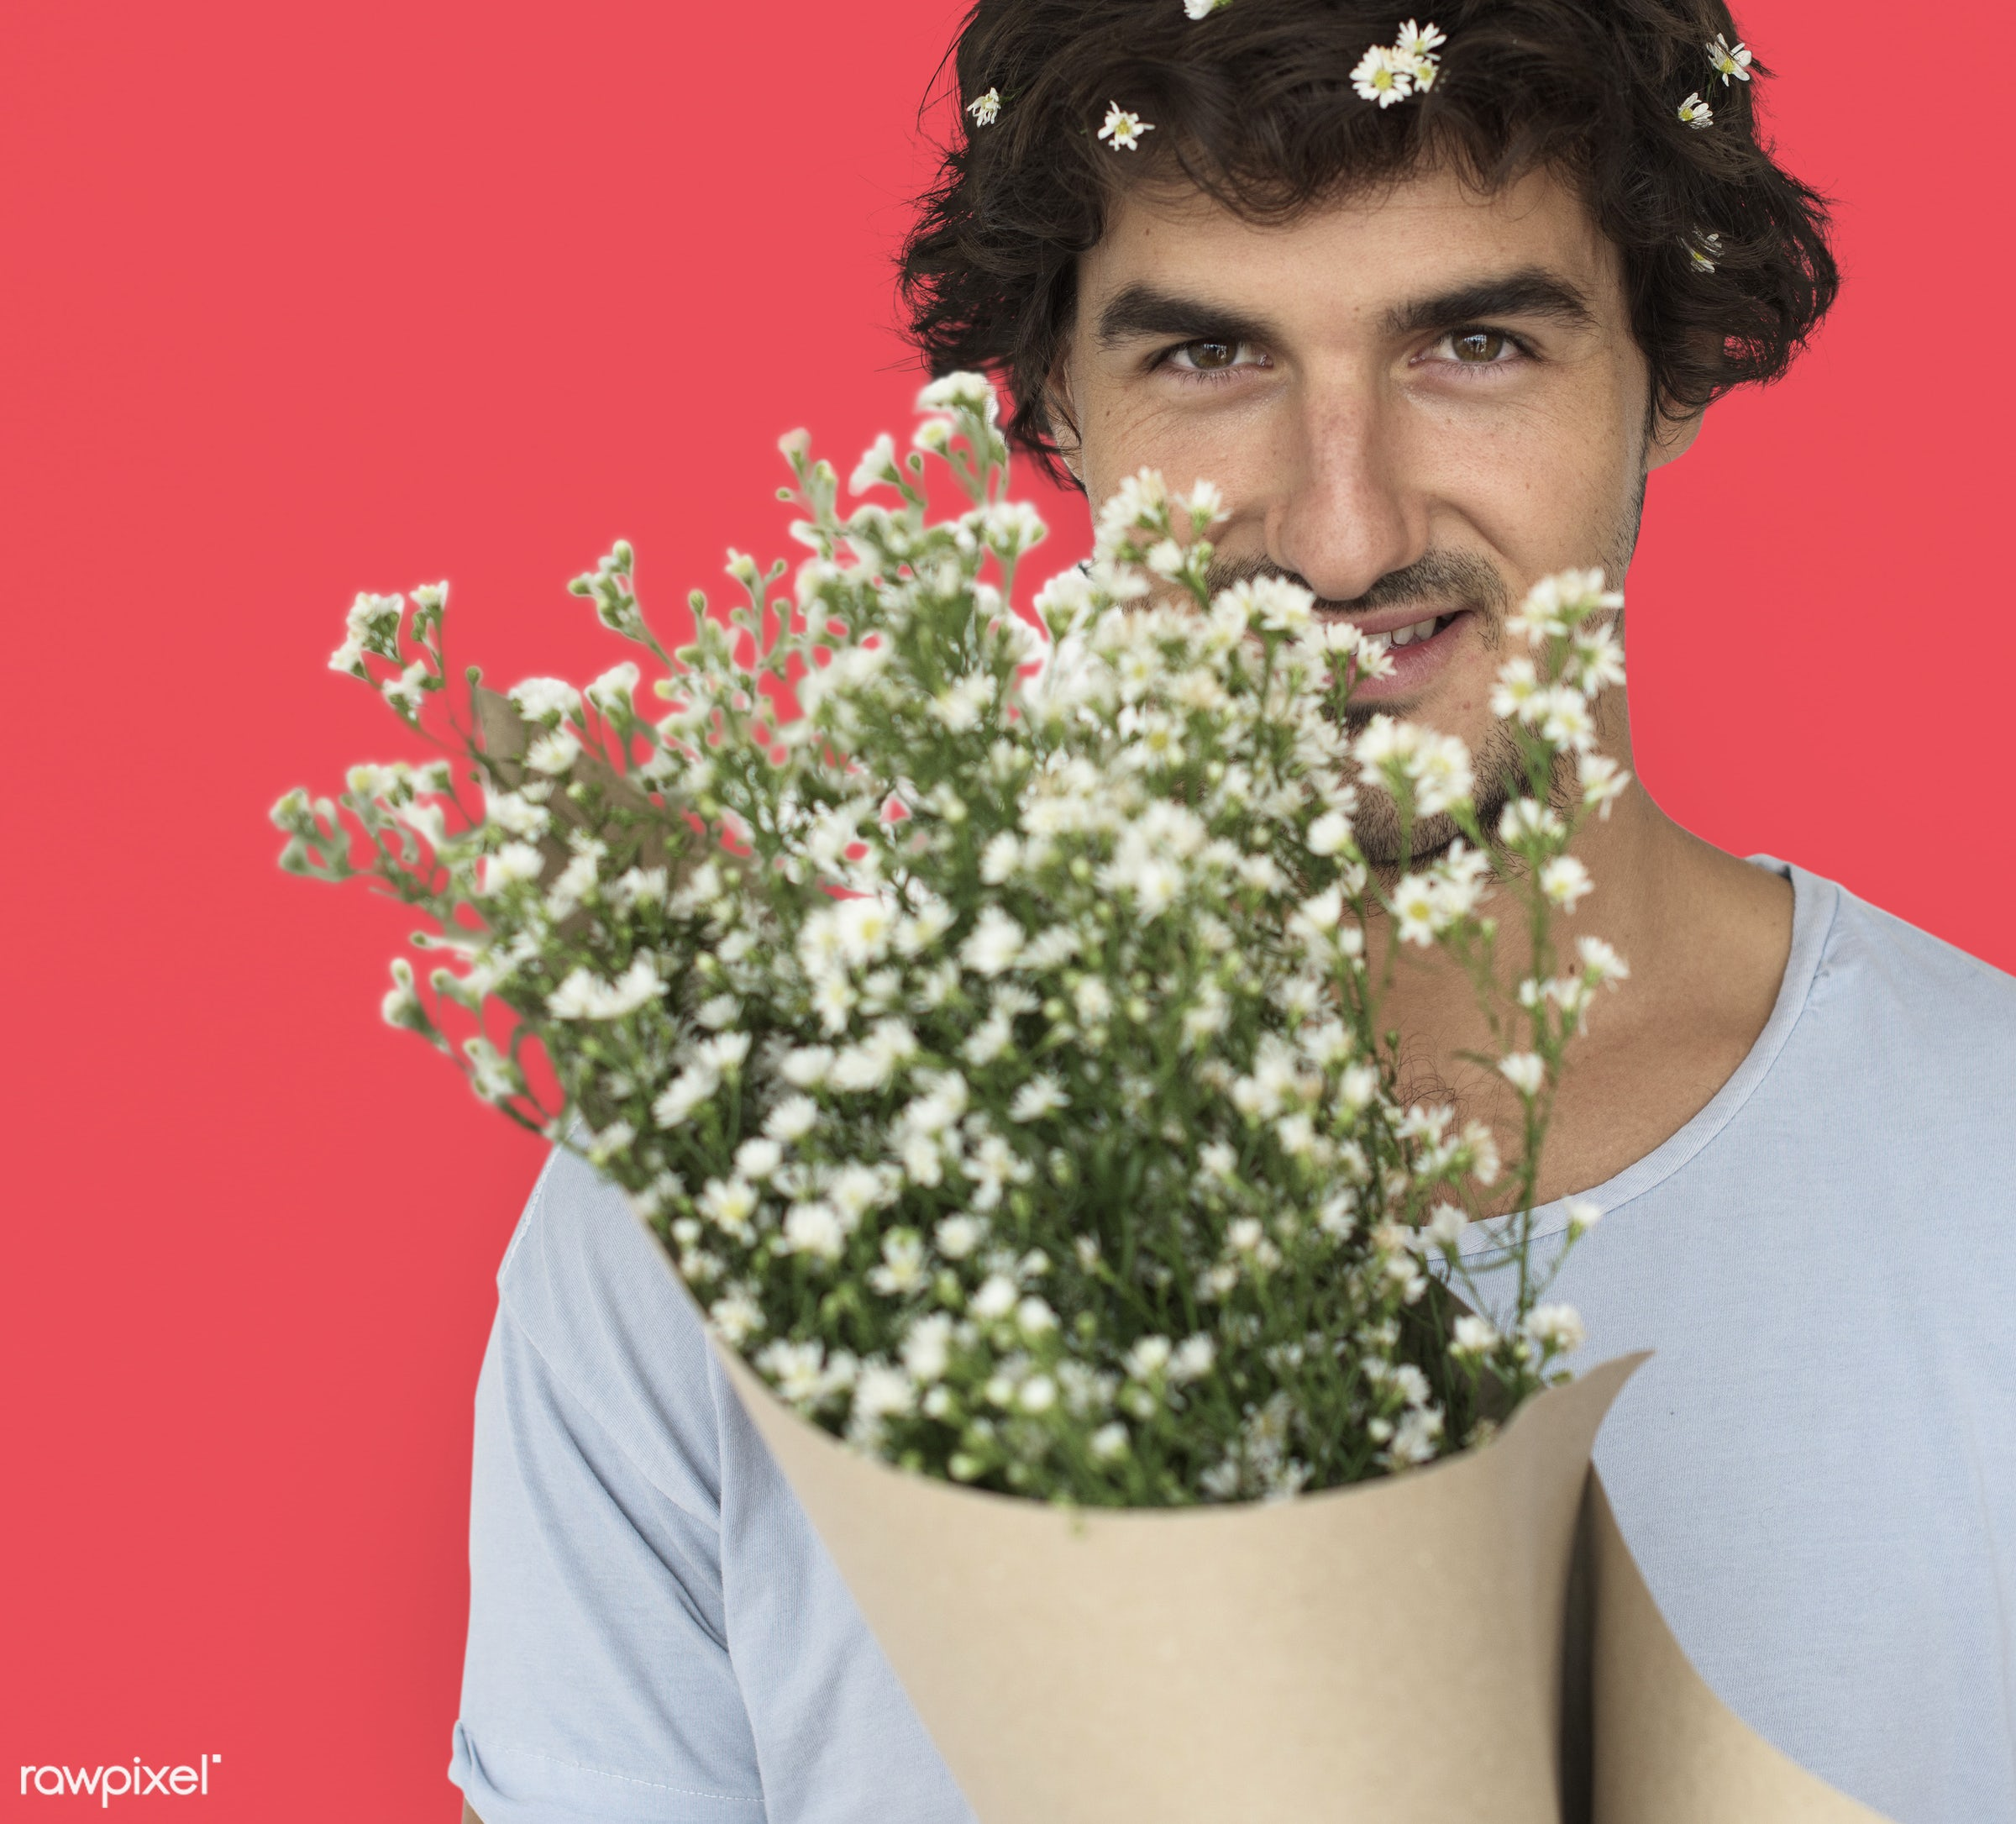 studio, expression, bouquet, person, people, smile, cheerful, flower, smiling, orange, isolated, happiness, portrait,...